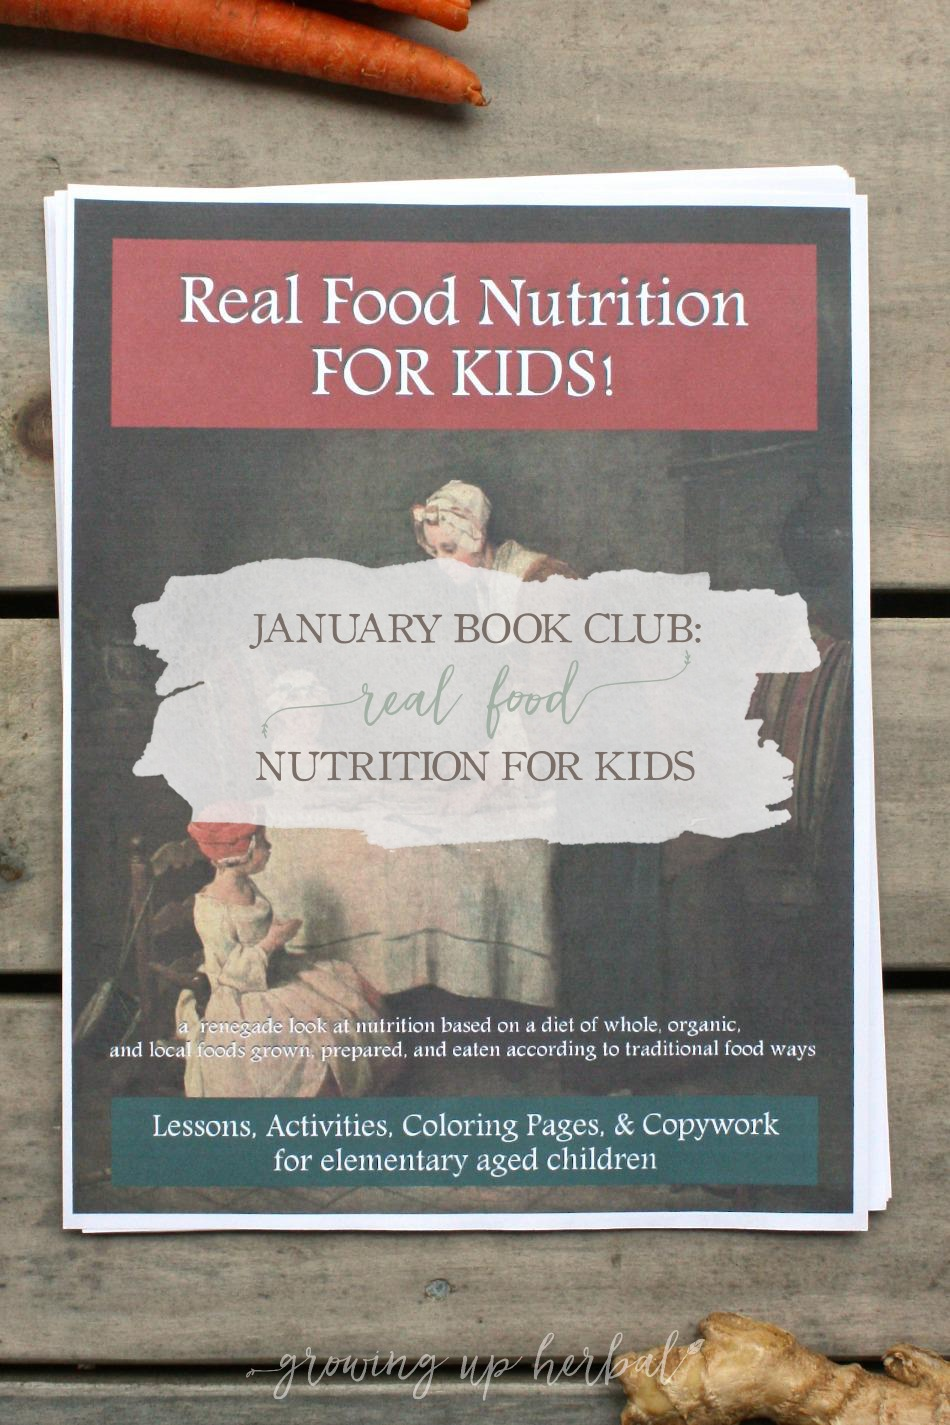 January Book Club: Real Food Nutrition For Kids | Growing Up Herbal | Making the switch to real food can be a challenge, especially when getting kids on board. Learn how to help them understand and want to eat real food with this month's book club book!